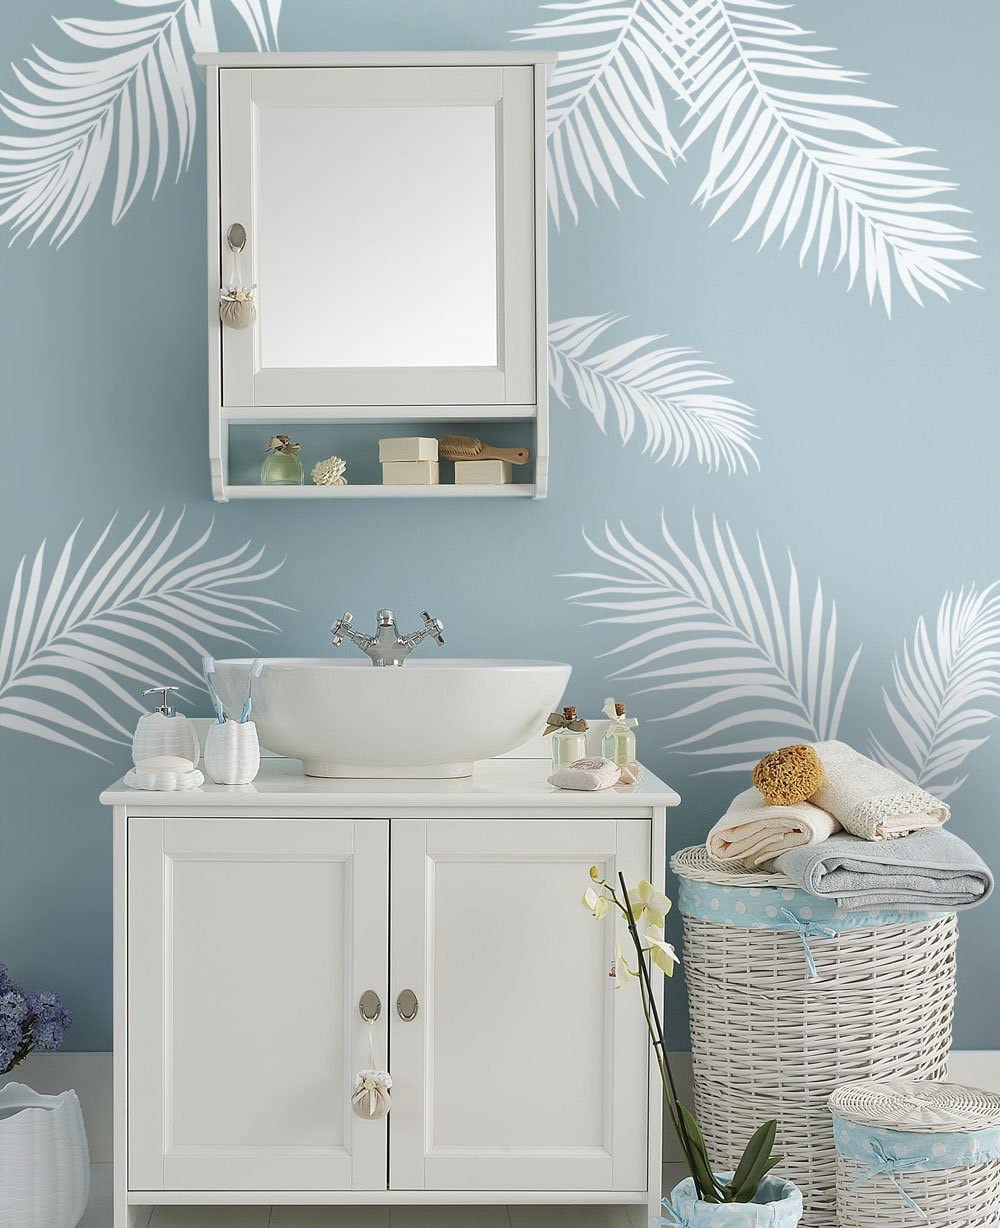 White /& Grey Thick Textured Tropical Leaves Leaf Wallpaper Kitchen Bathroom